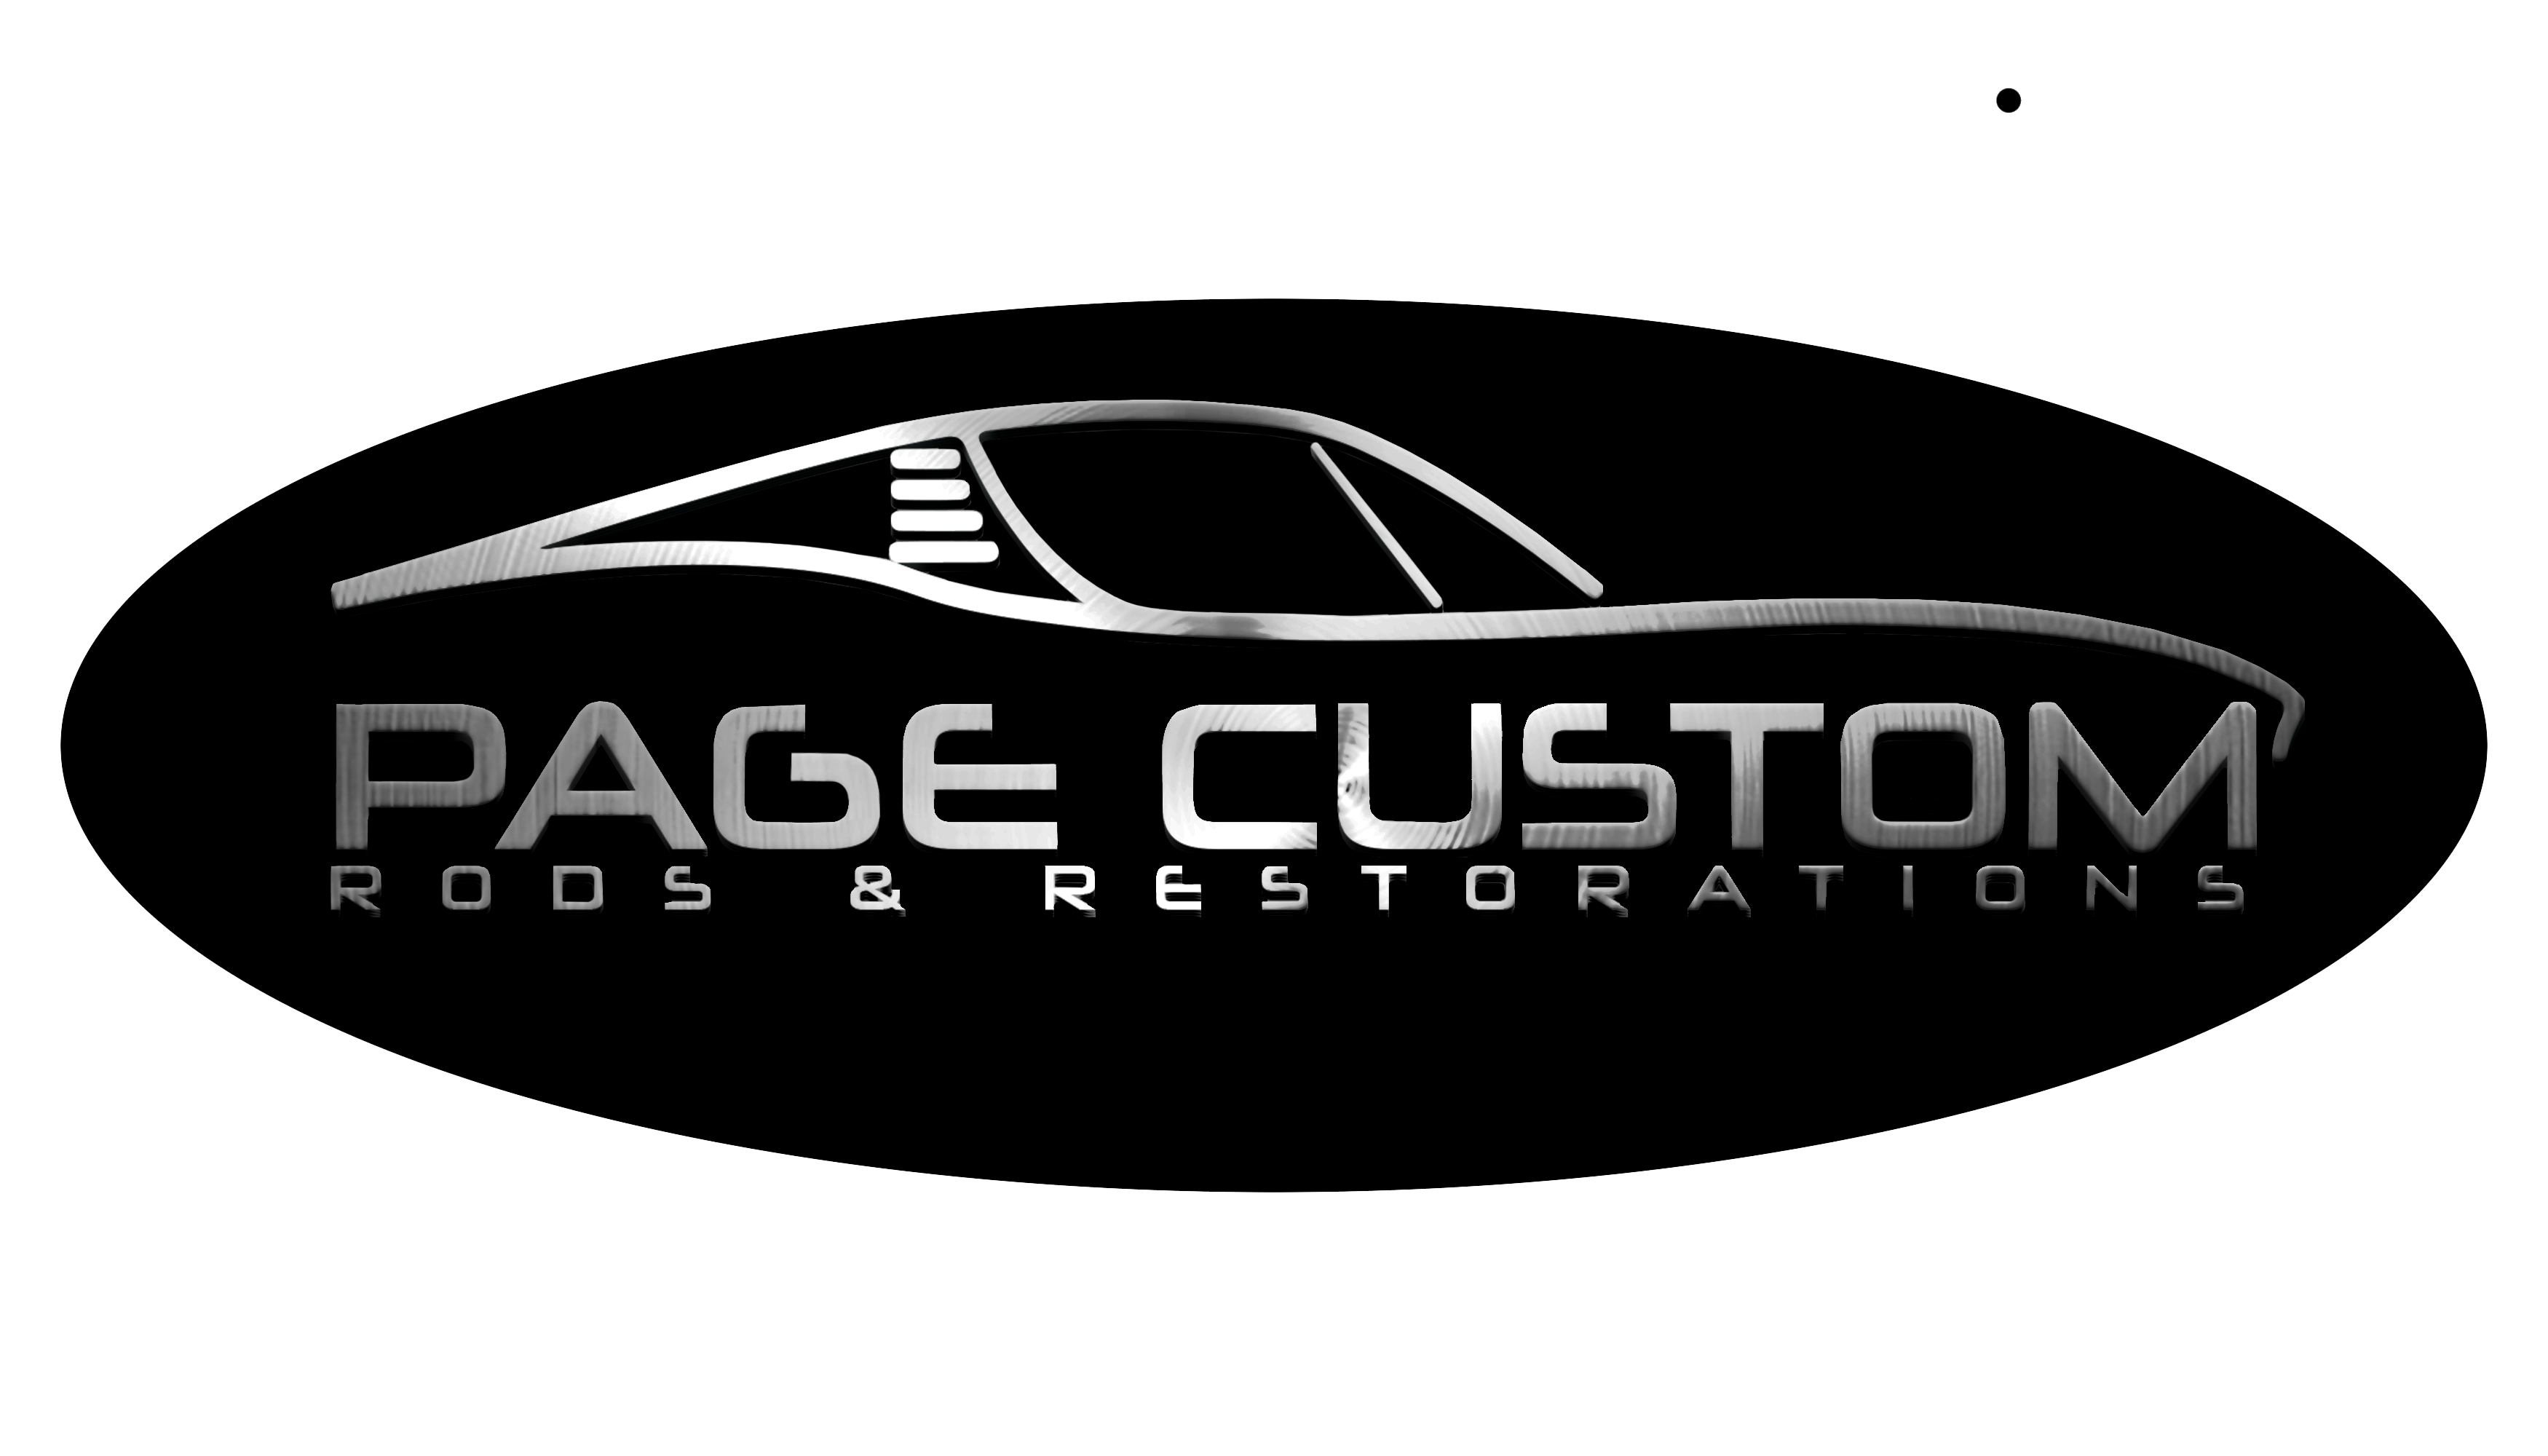 Page Customs-Oilville VA-Automotive Customs and Restorations